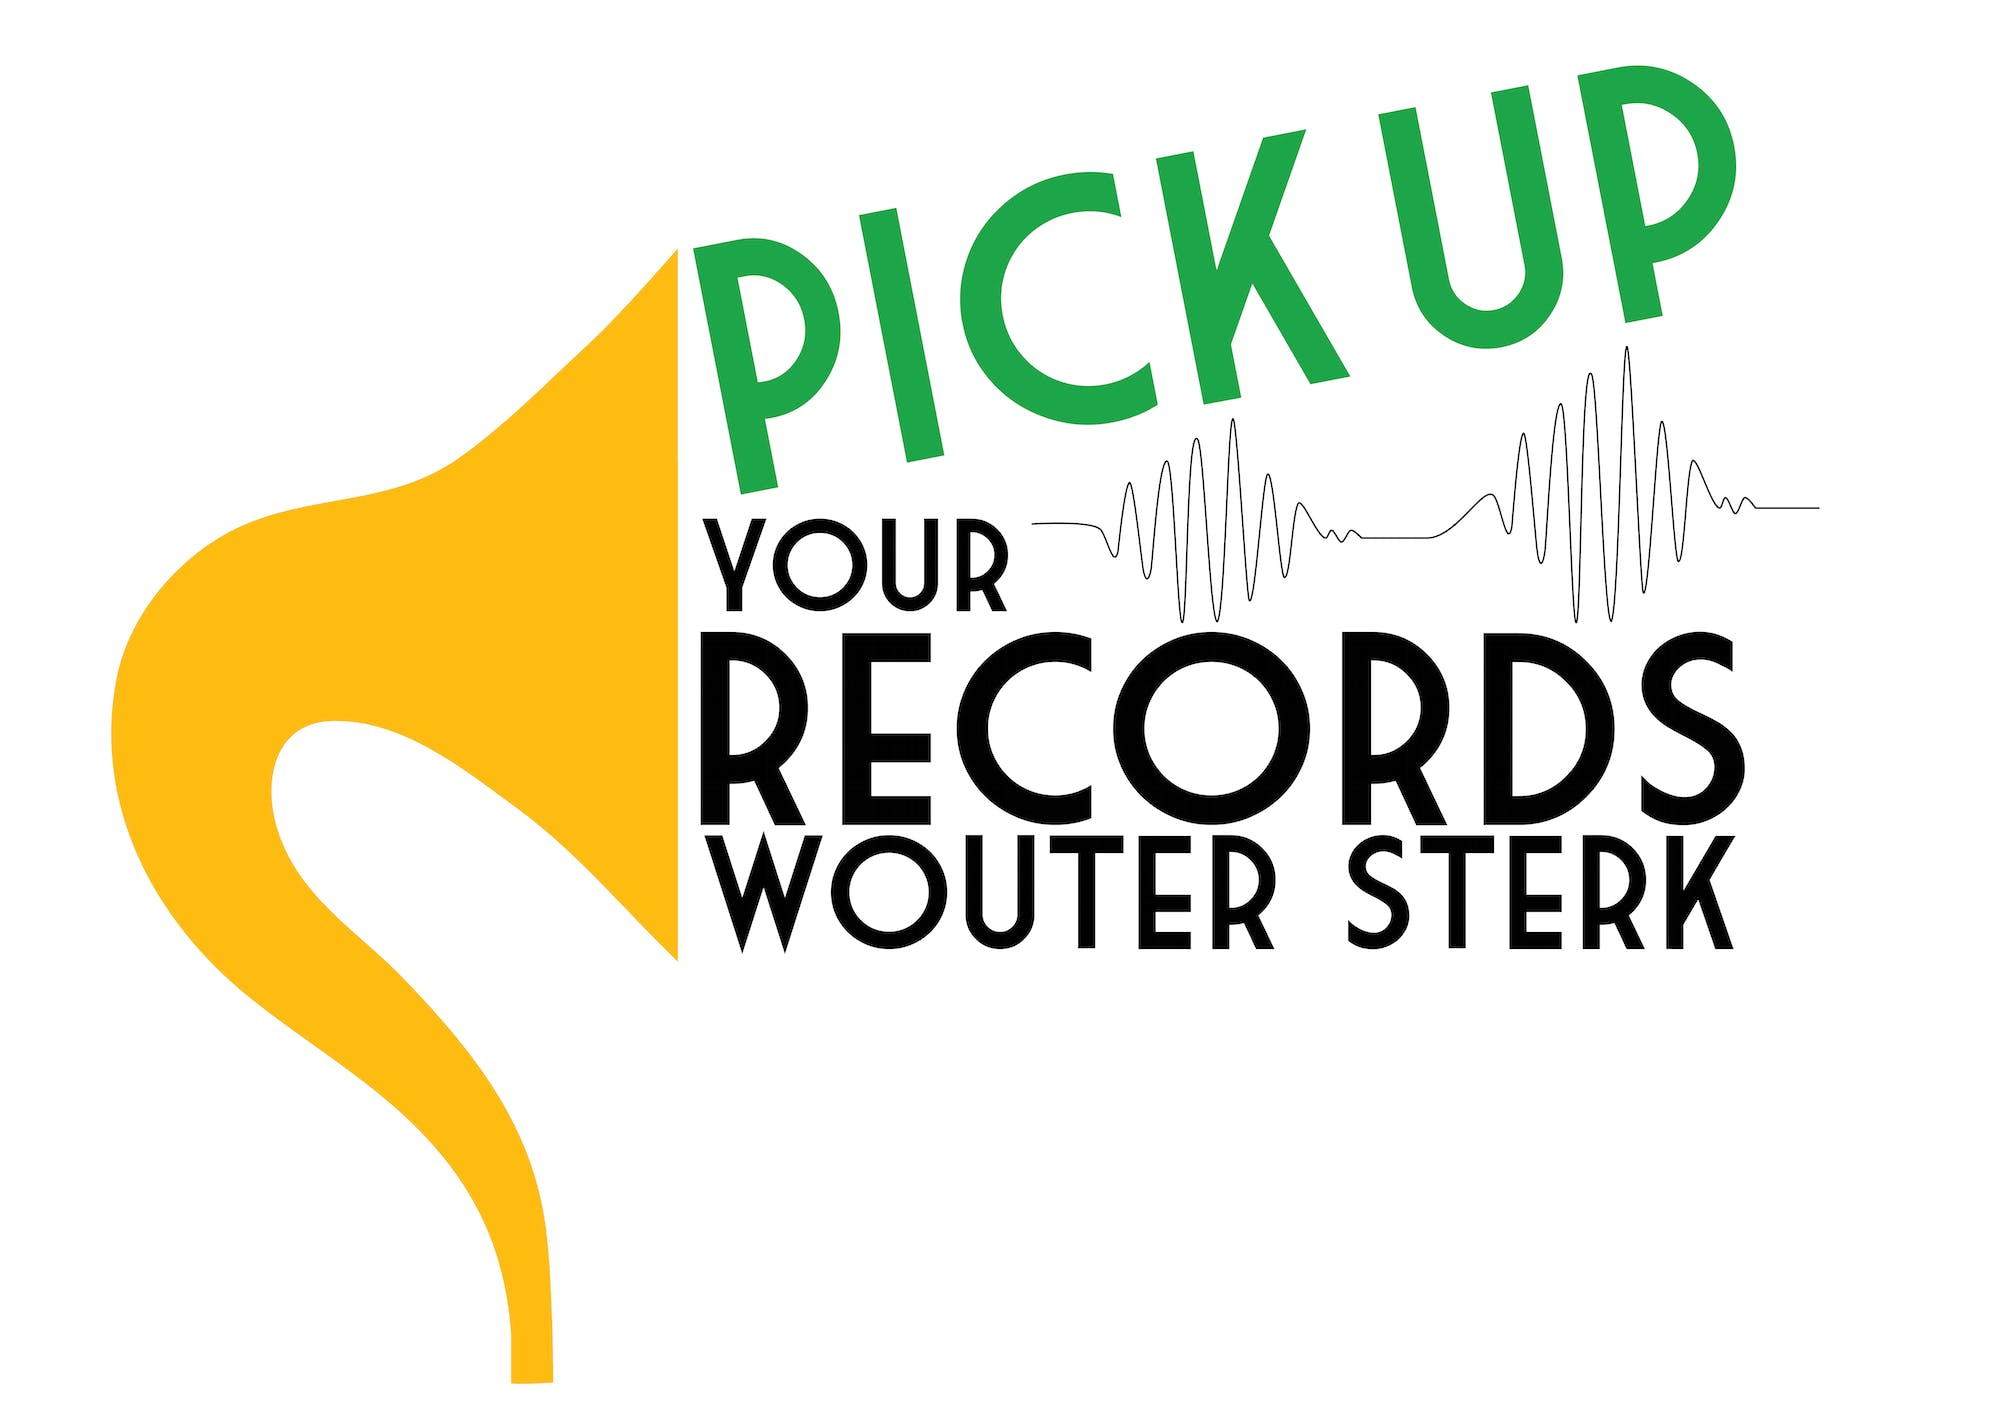 Pick Up Your Records - Record Store Image